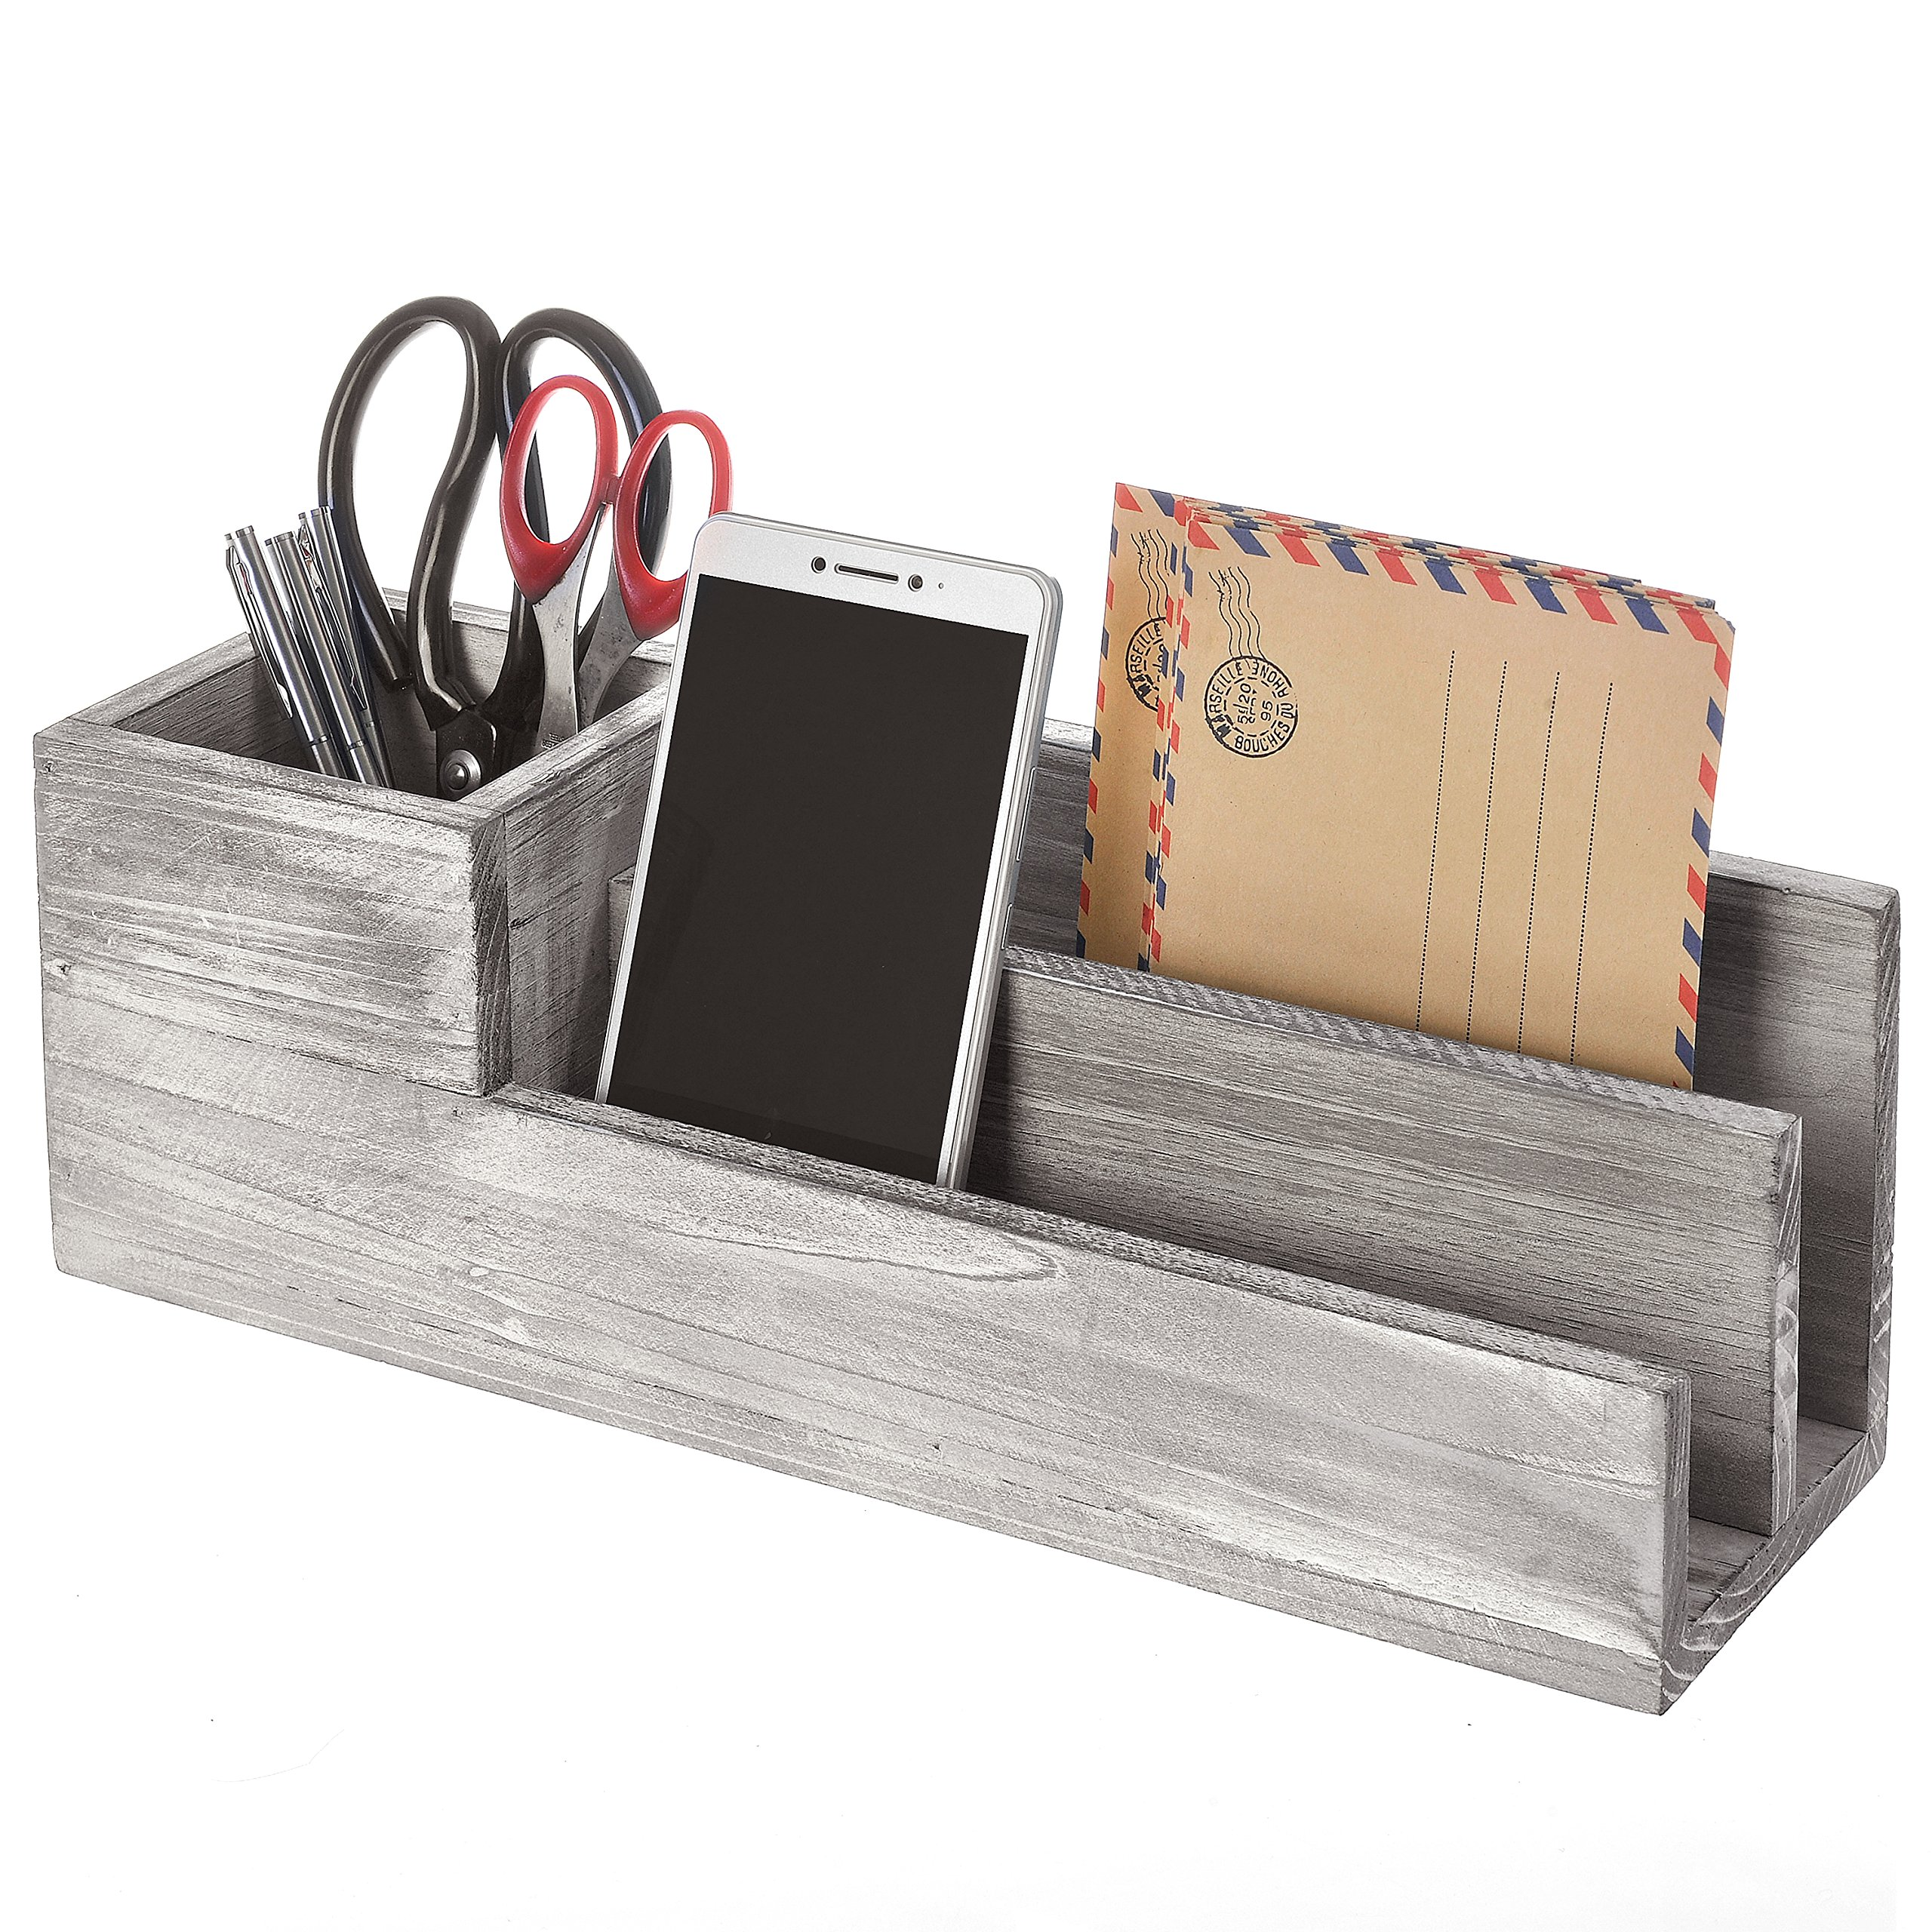 Rustic Whitewashed Gray Wood Desktop Pen Caddy & 2 Slot Letter Sorter Office Organizer by MyGift